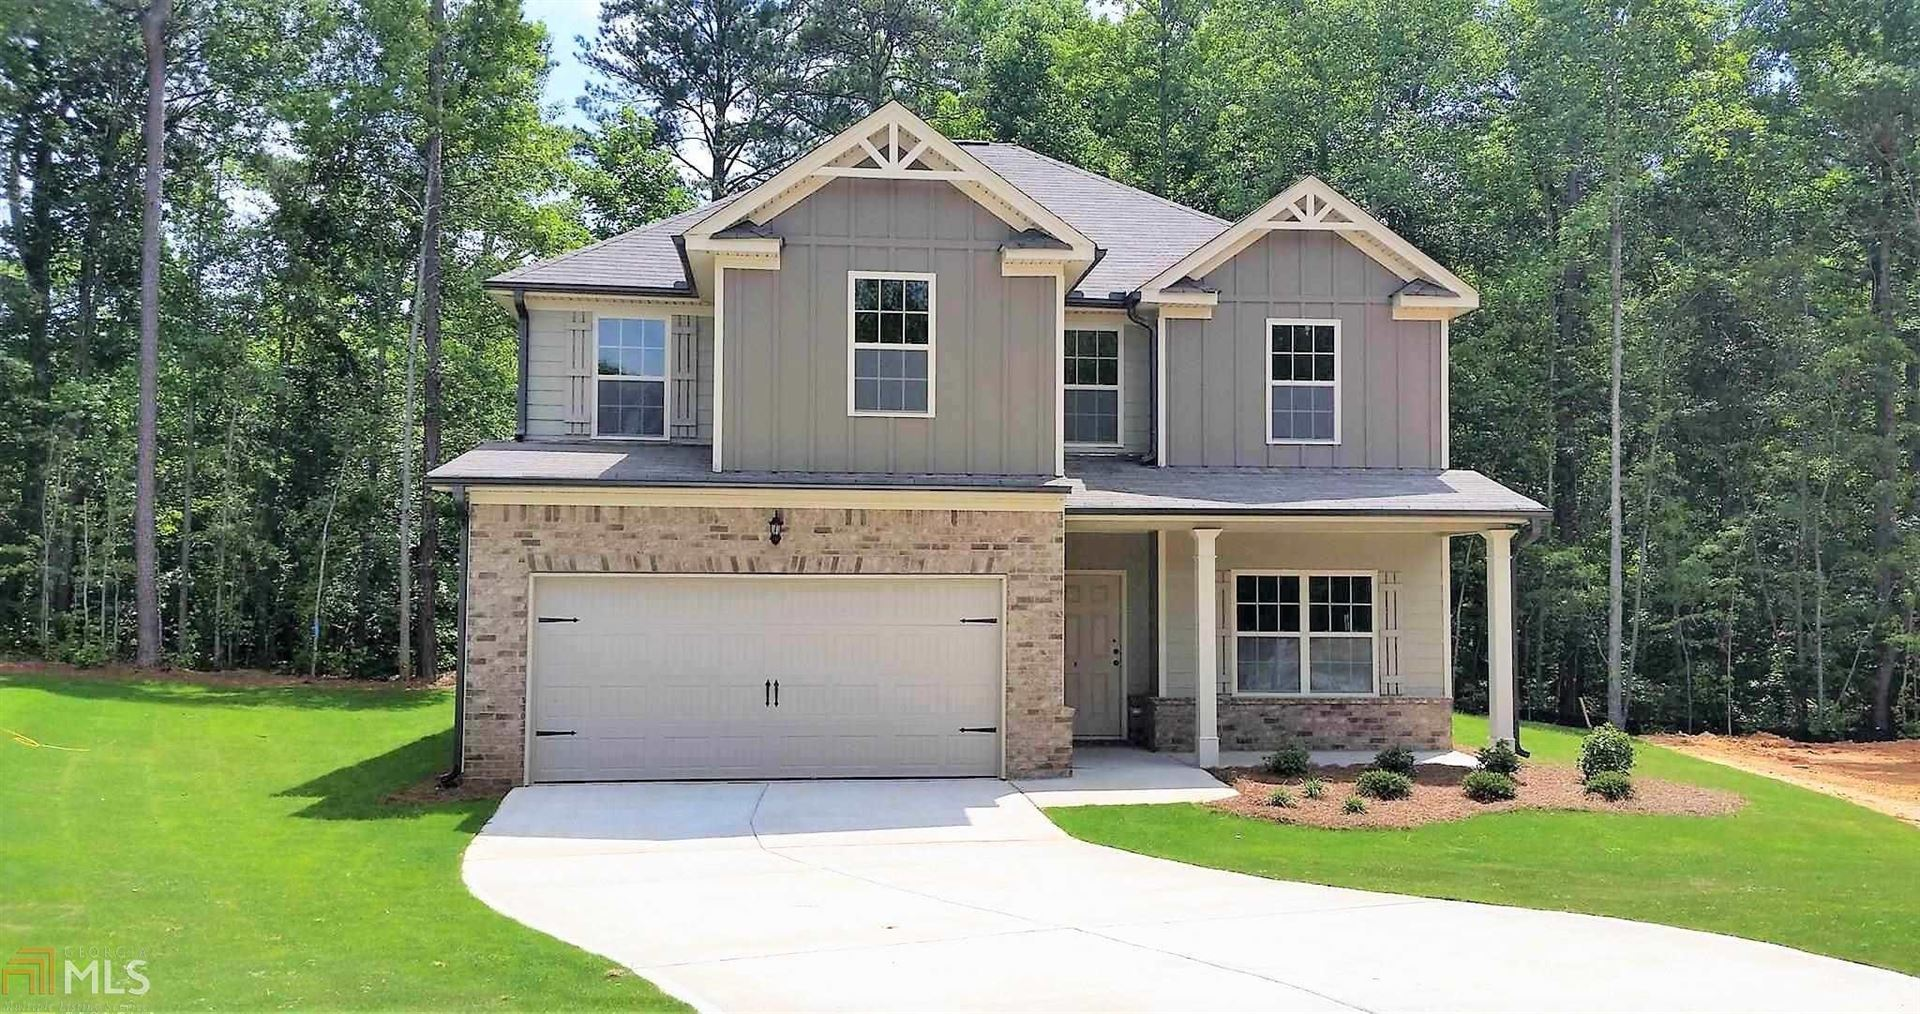 117 Clear Springs Dr, Jackson, GA 30233 - #: 8785106